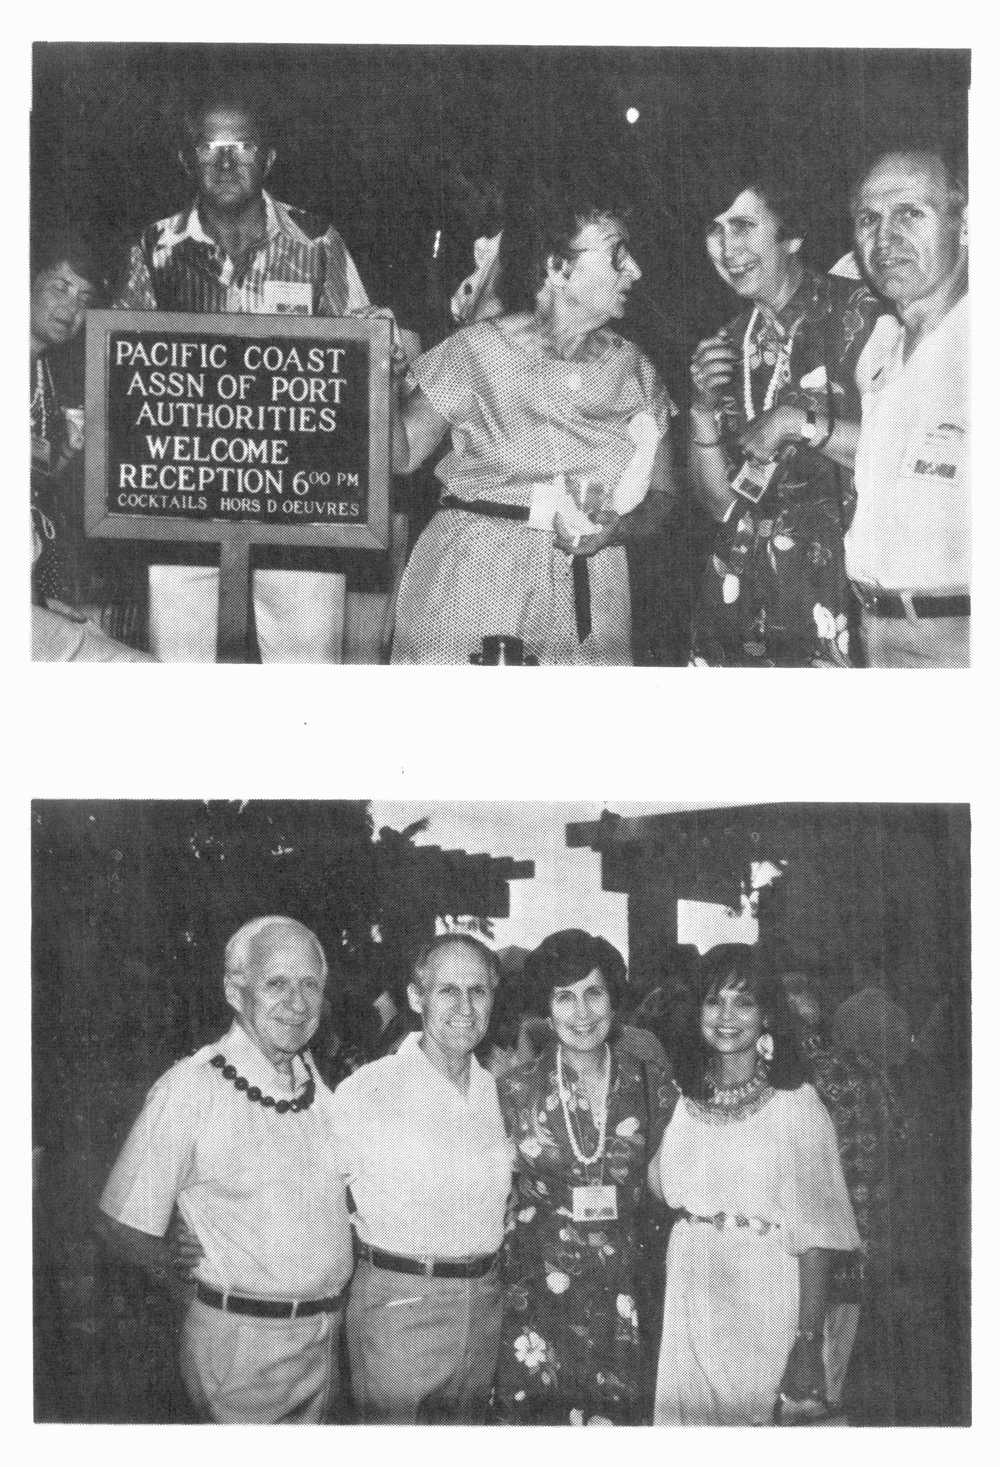 1984 AC Hawaii.jpg